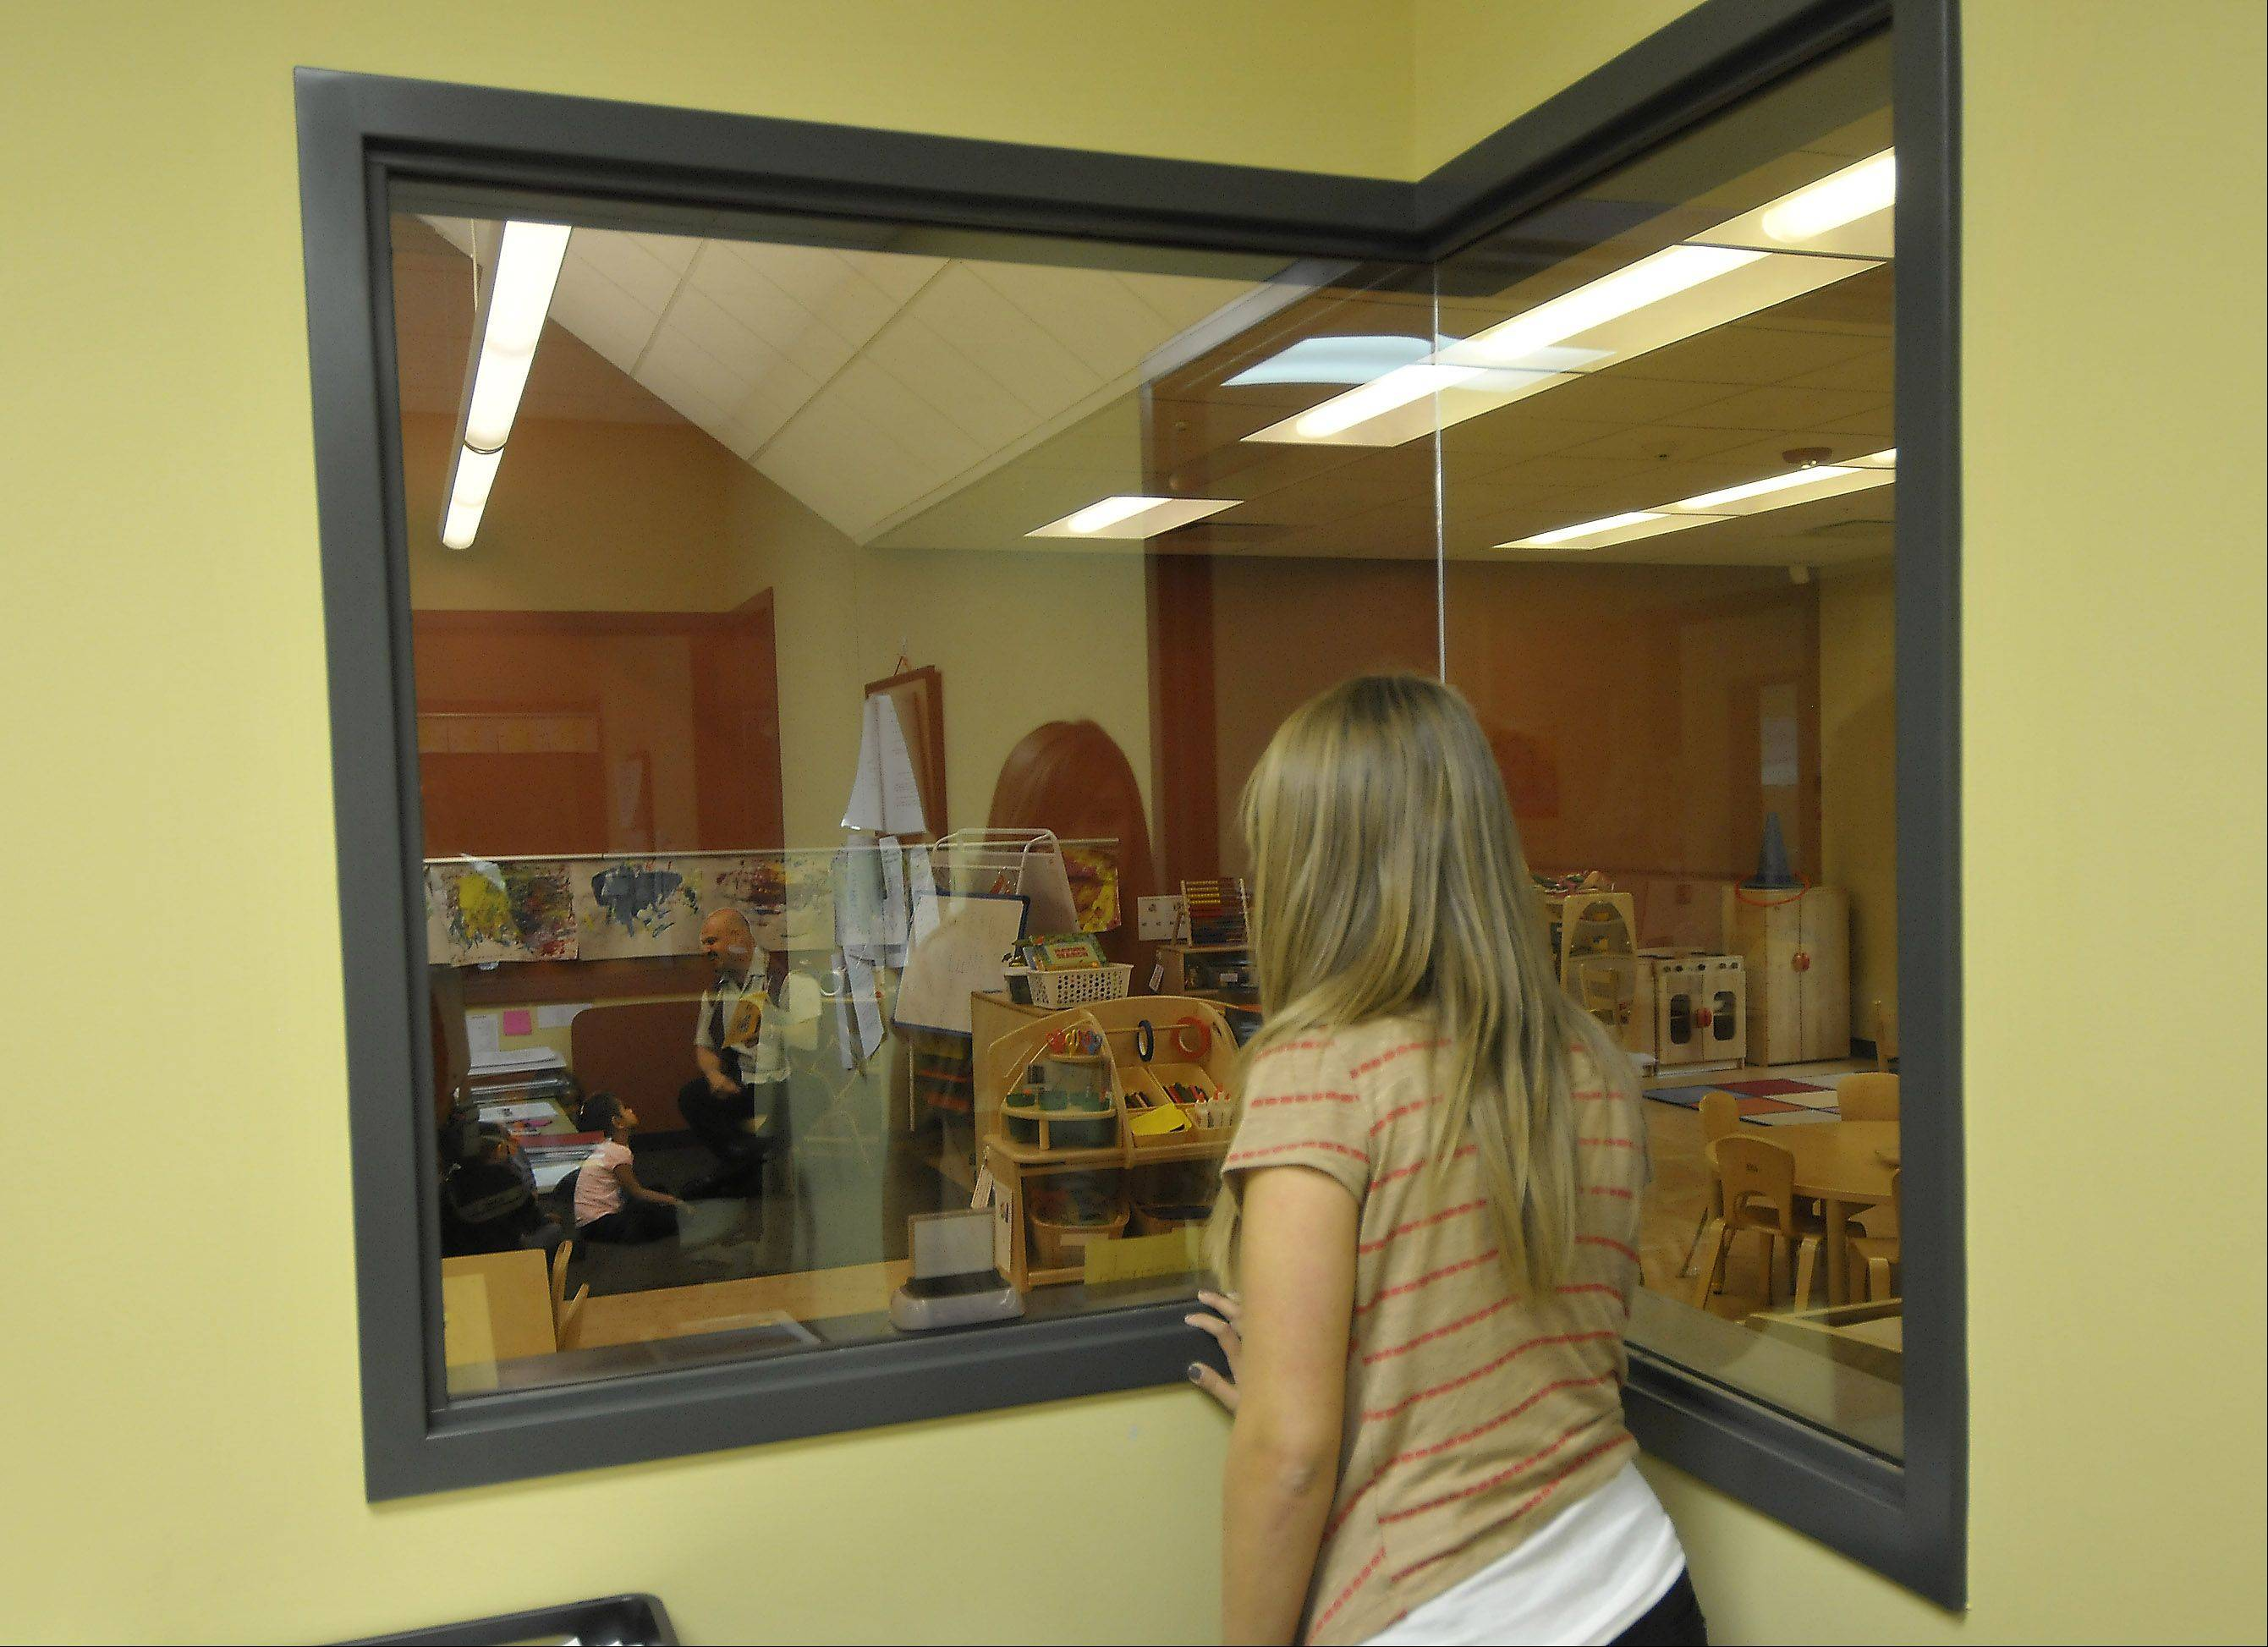 One of the features of the Educare of West DuPage building is two-way mirrors that allow parents to observe their kids in the classes. This helps achieve the new school's goal of supporting parental involvement.